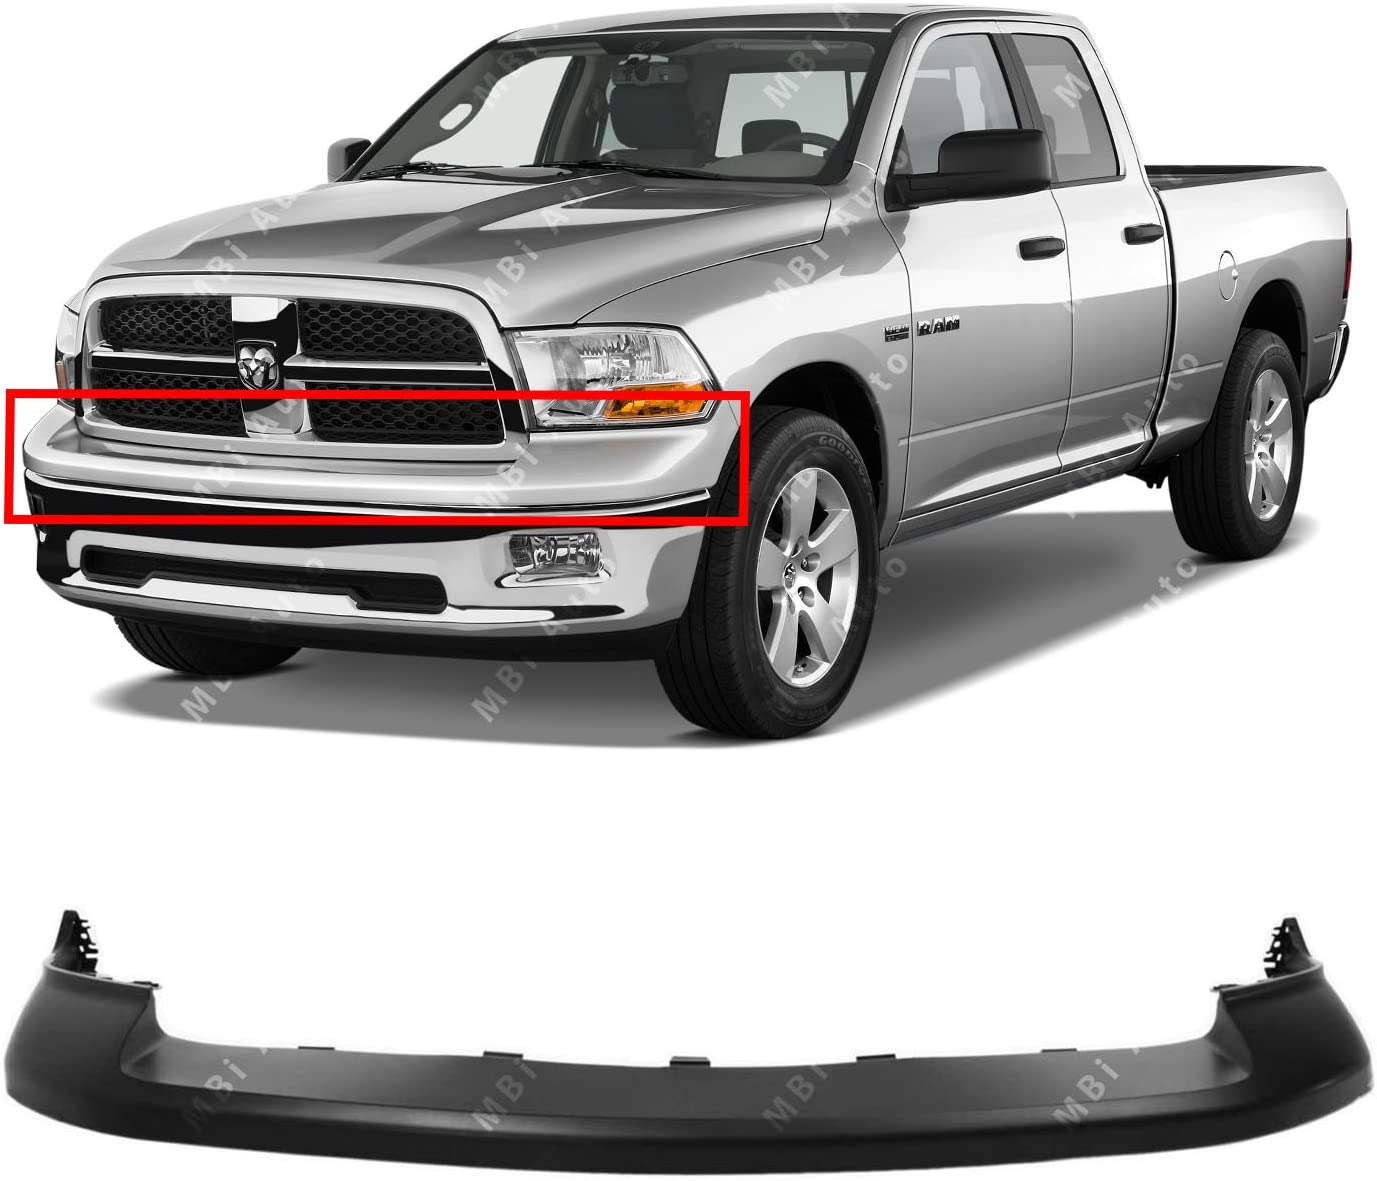 NEW CH1014101 UPPER BUMPER COVER FRONT FOR DODGE RAM 1500 2009-2012